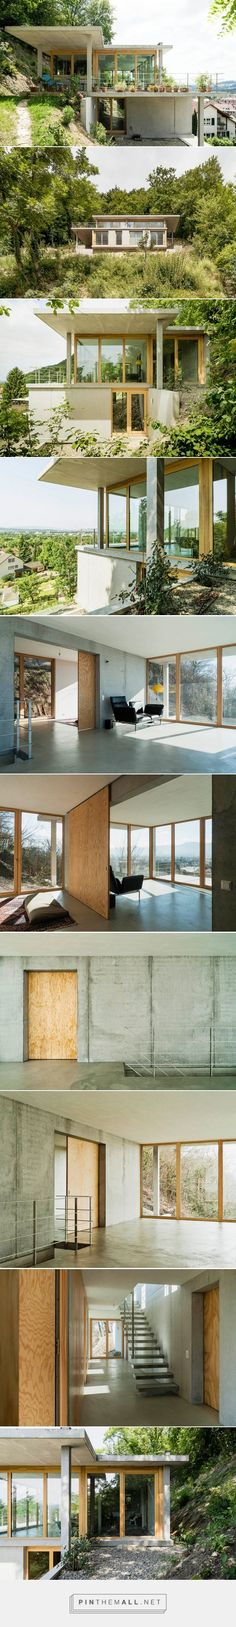 gian salis builds a house on a slope in southern germany - created via http://pinthemall.net